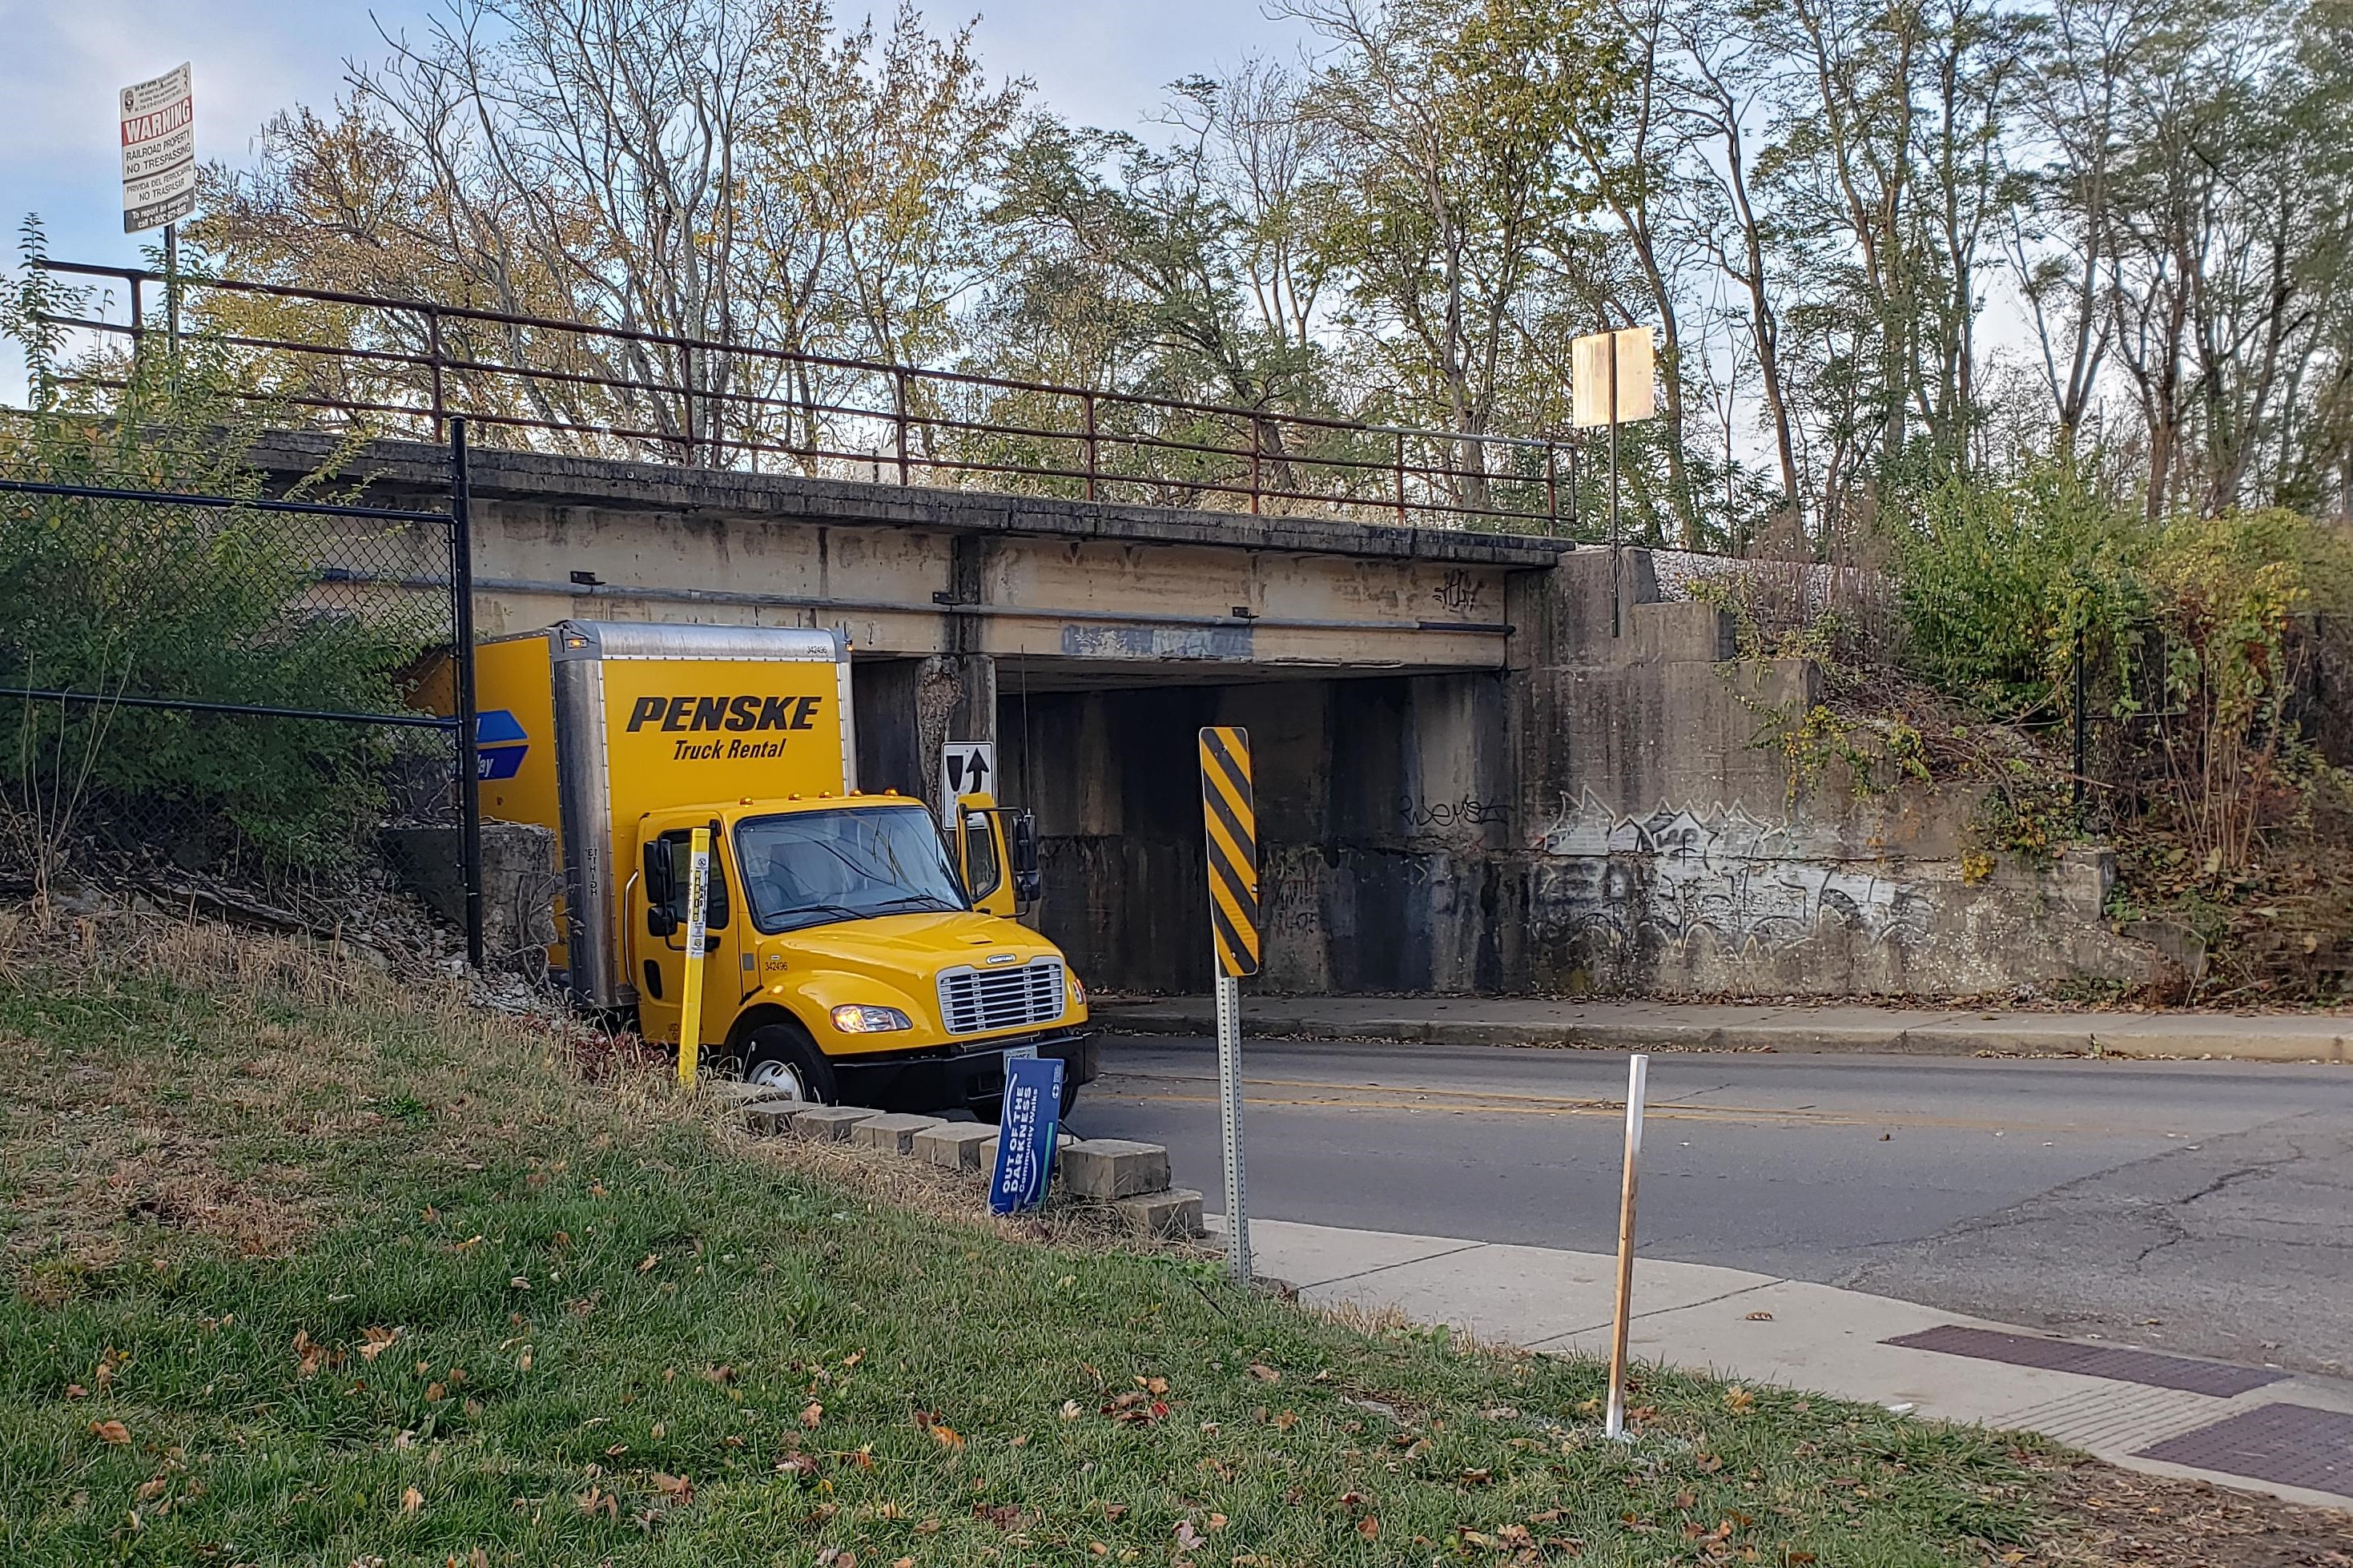 A Penske rental truck stuck under the Indiana Ave. railway bridge. Nov. 4, 2019.